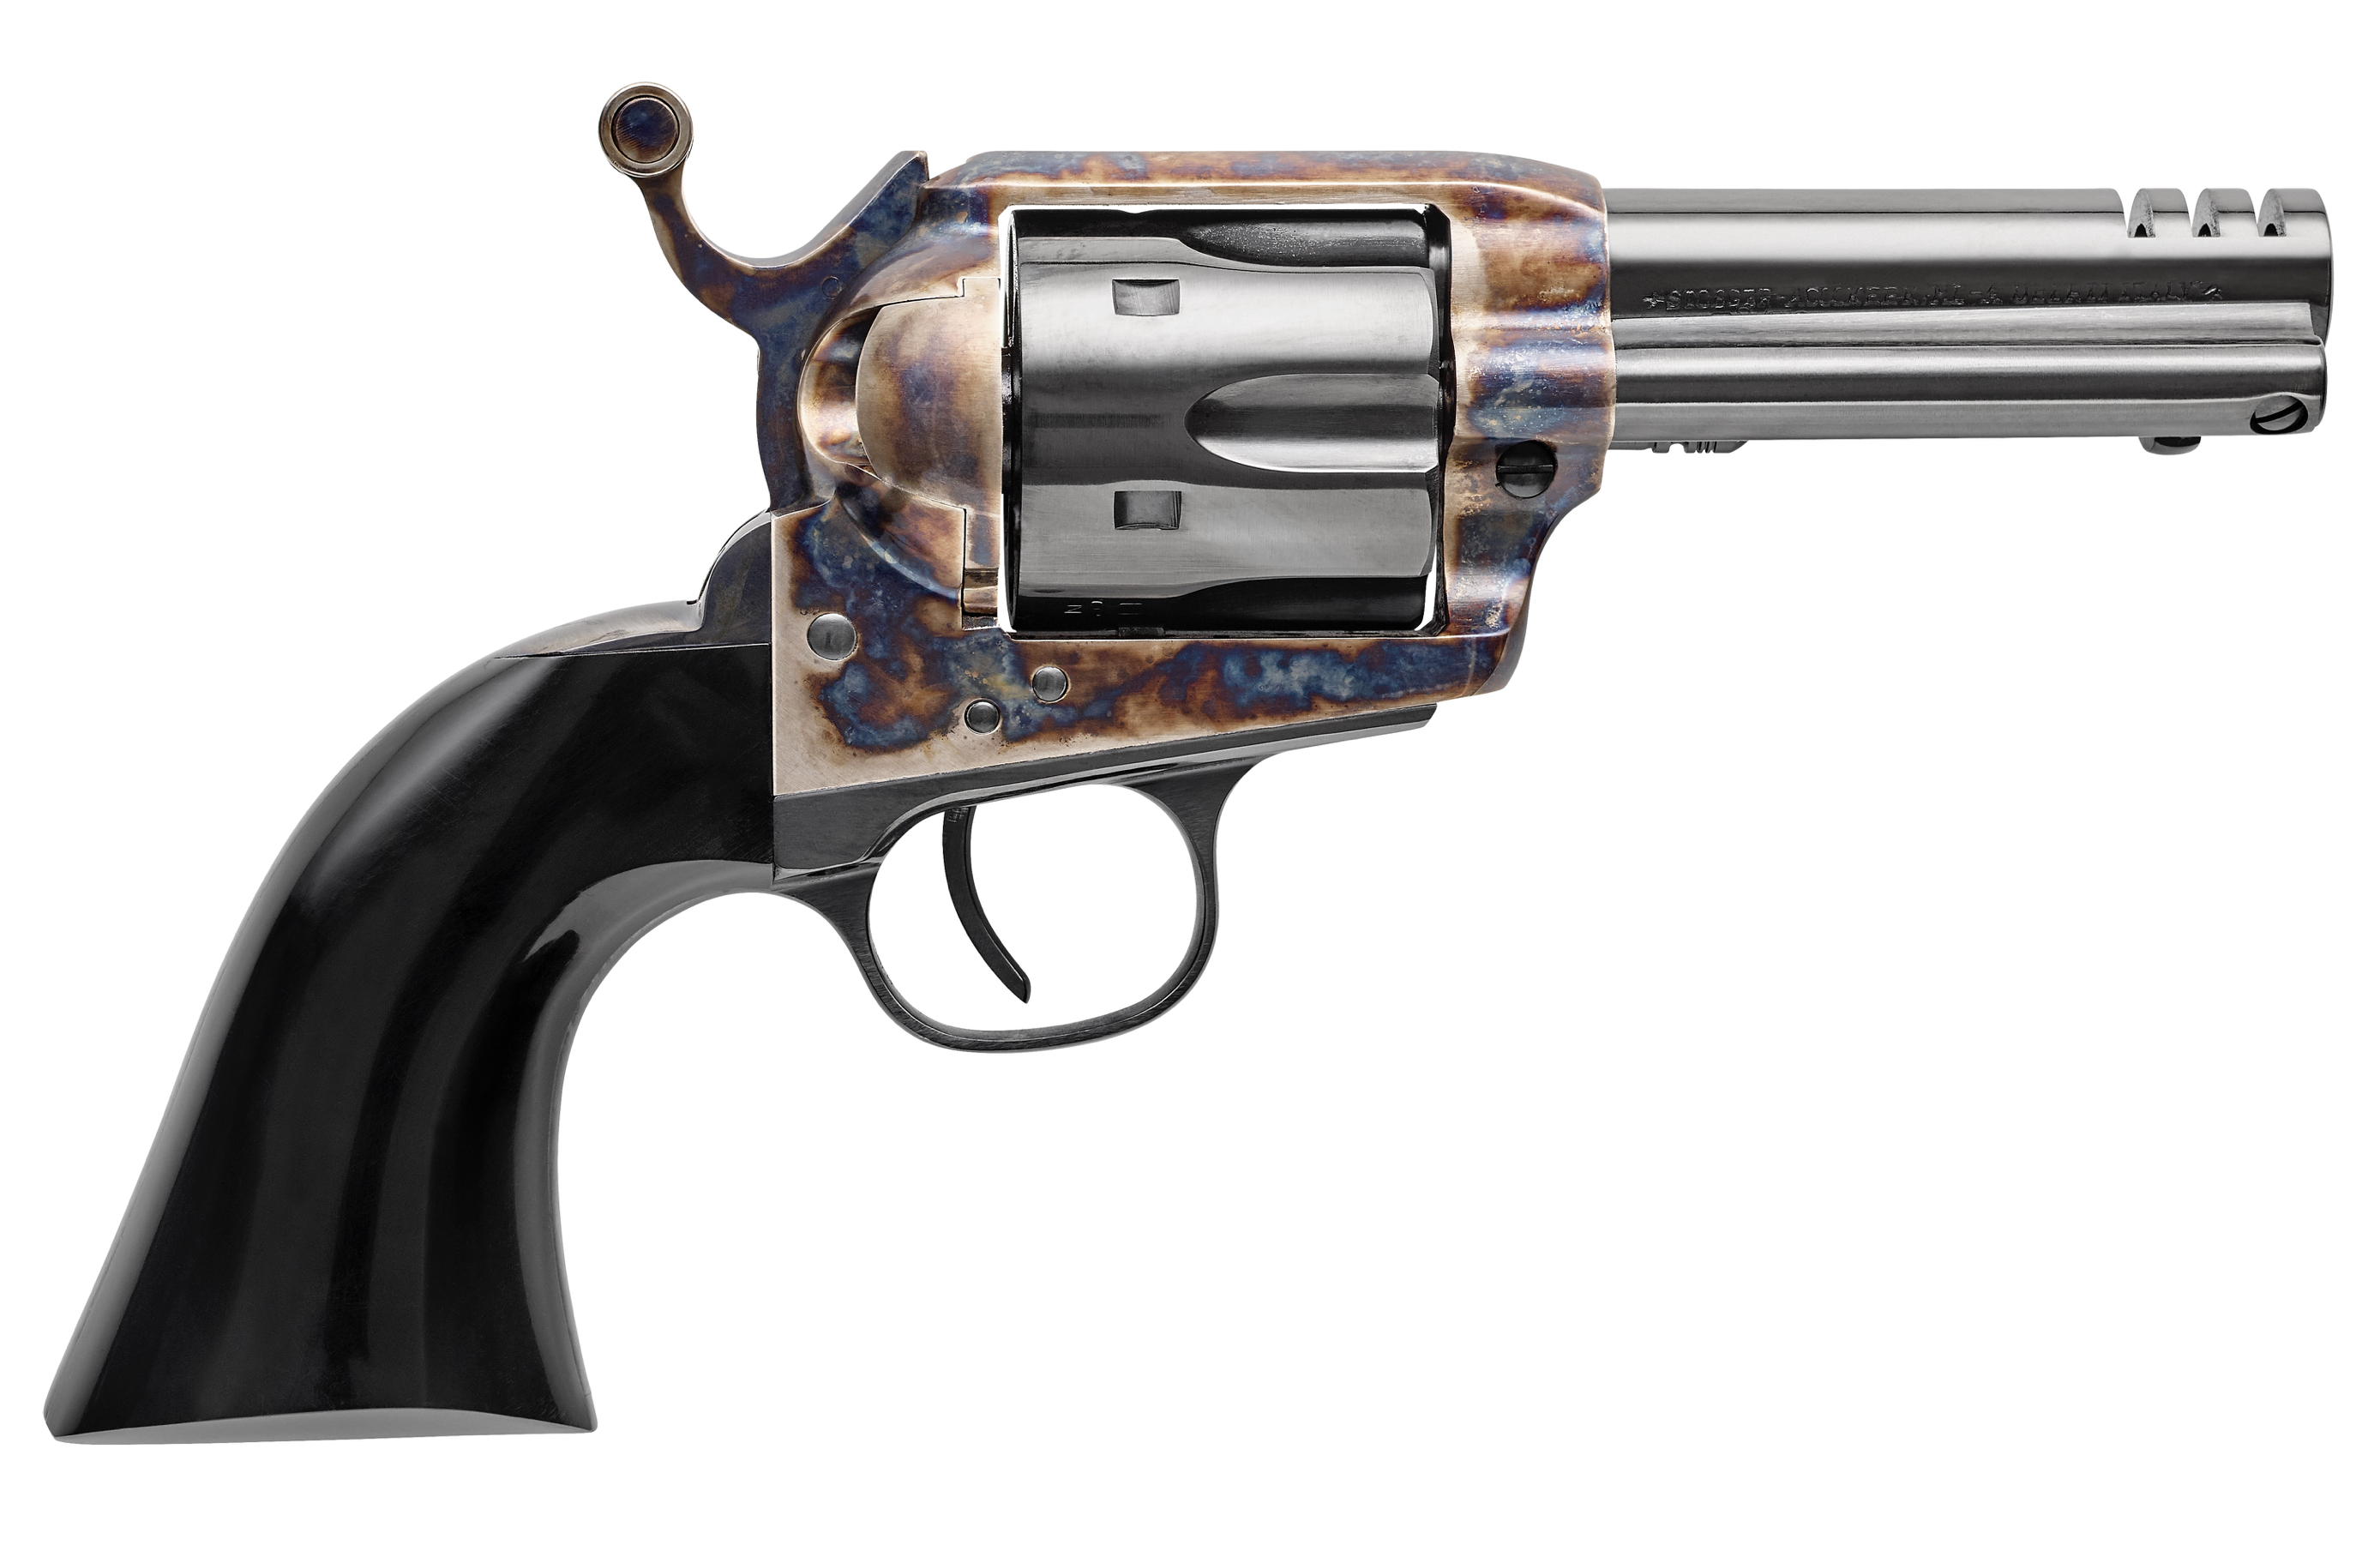 Custom Single Action Army Revolver Used in the Movie The